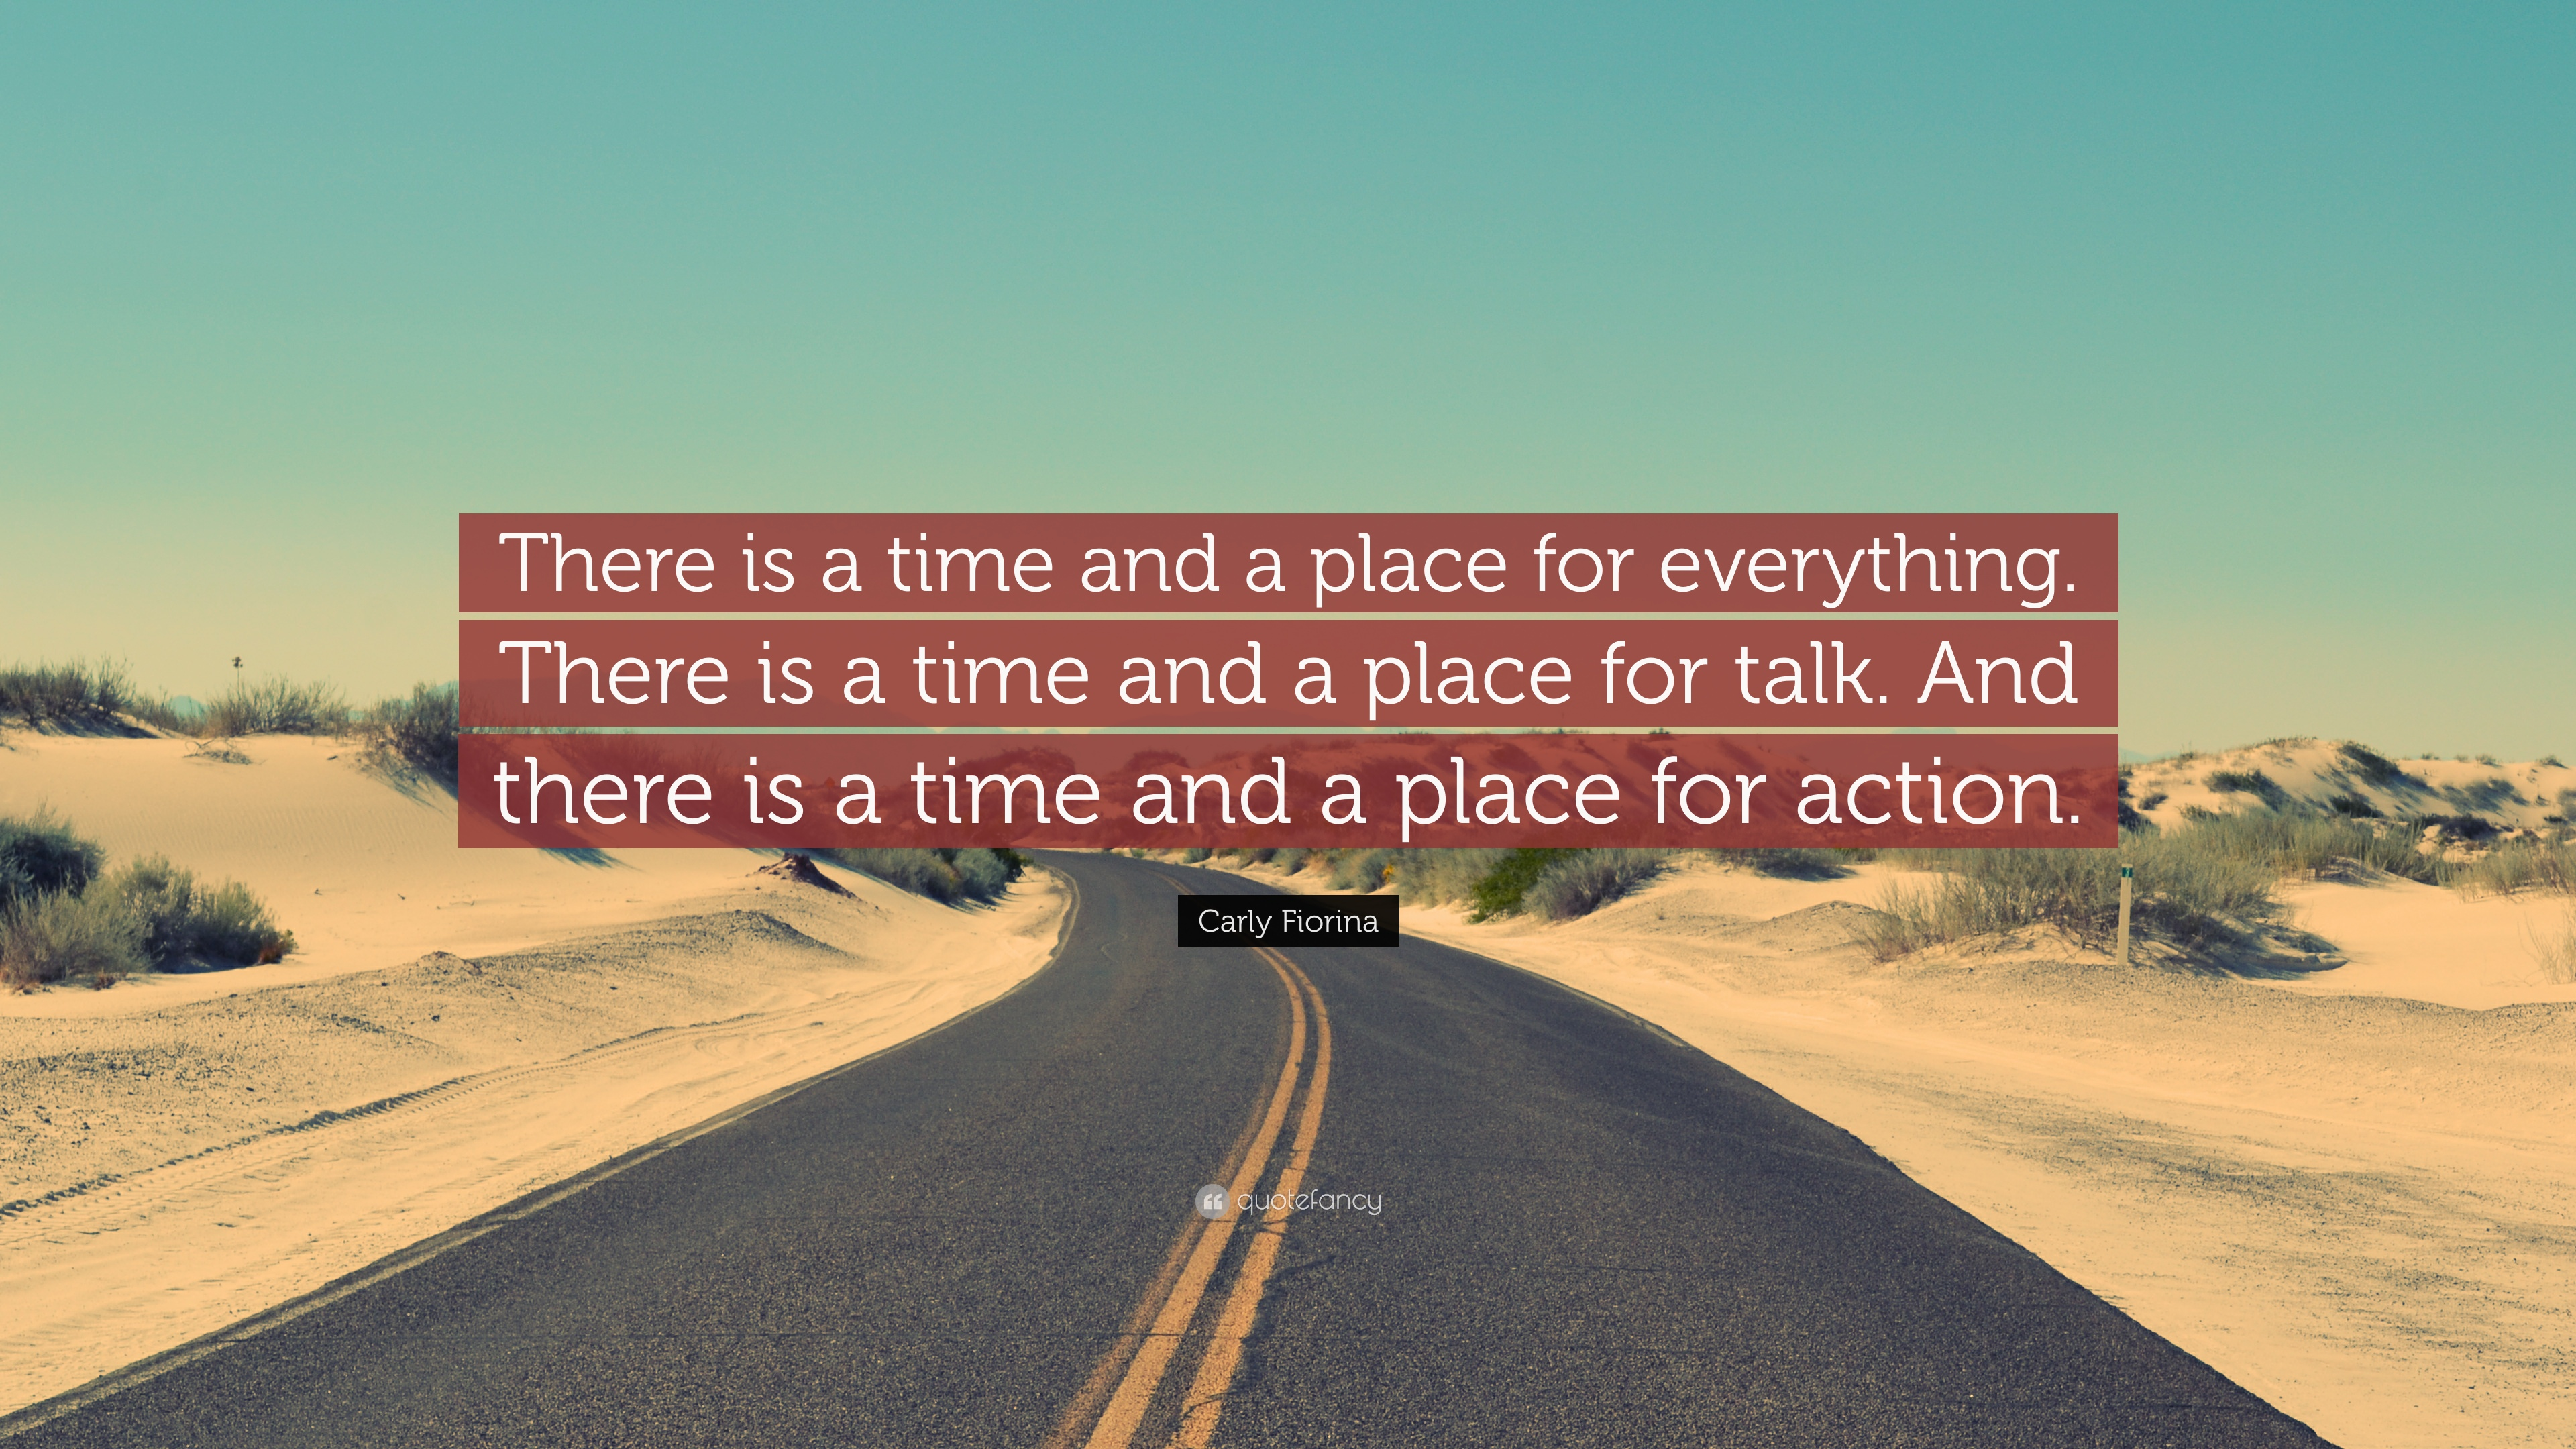 Carly Fiorina Quote There Is A Time And A Place For Everything